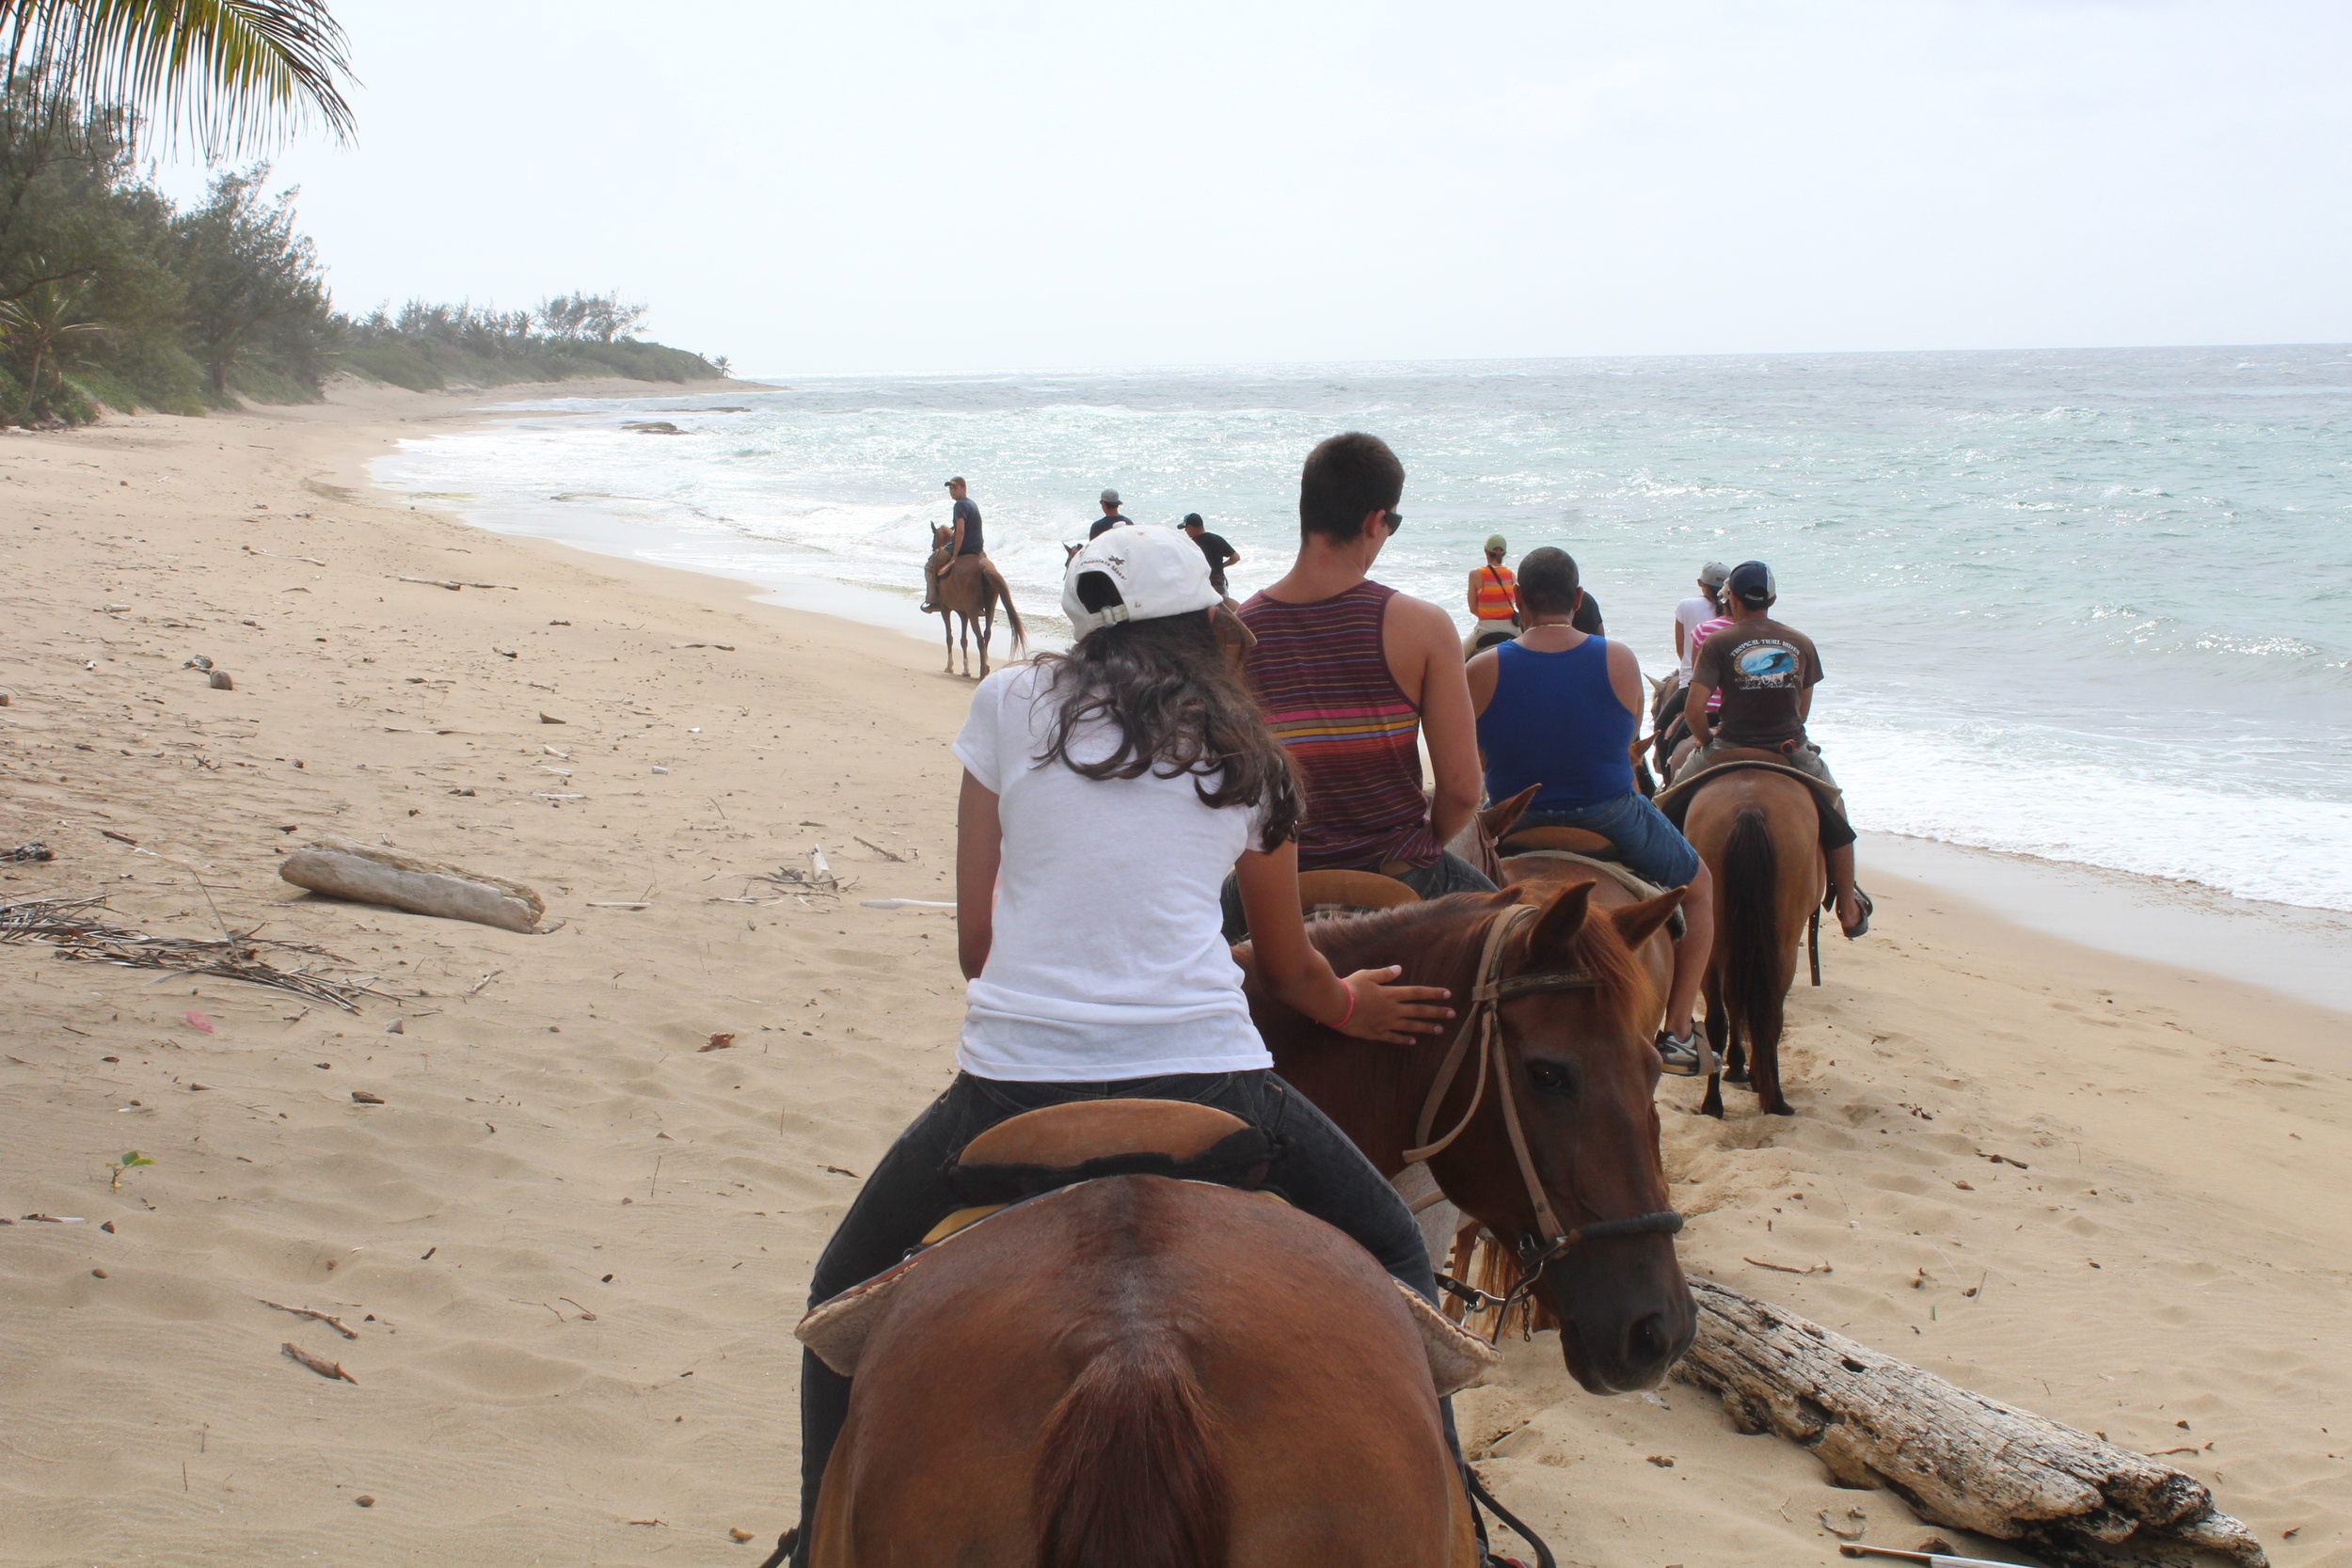 In our horseback riding tour, we reached Survival Beach. Photo: Javier Vélez